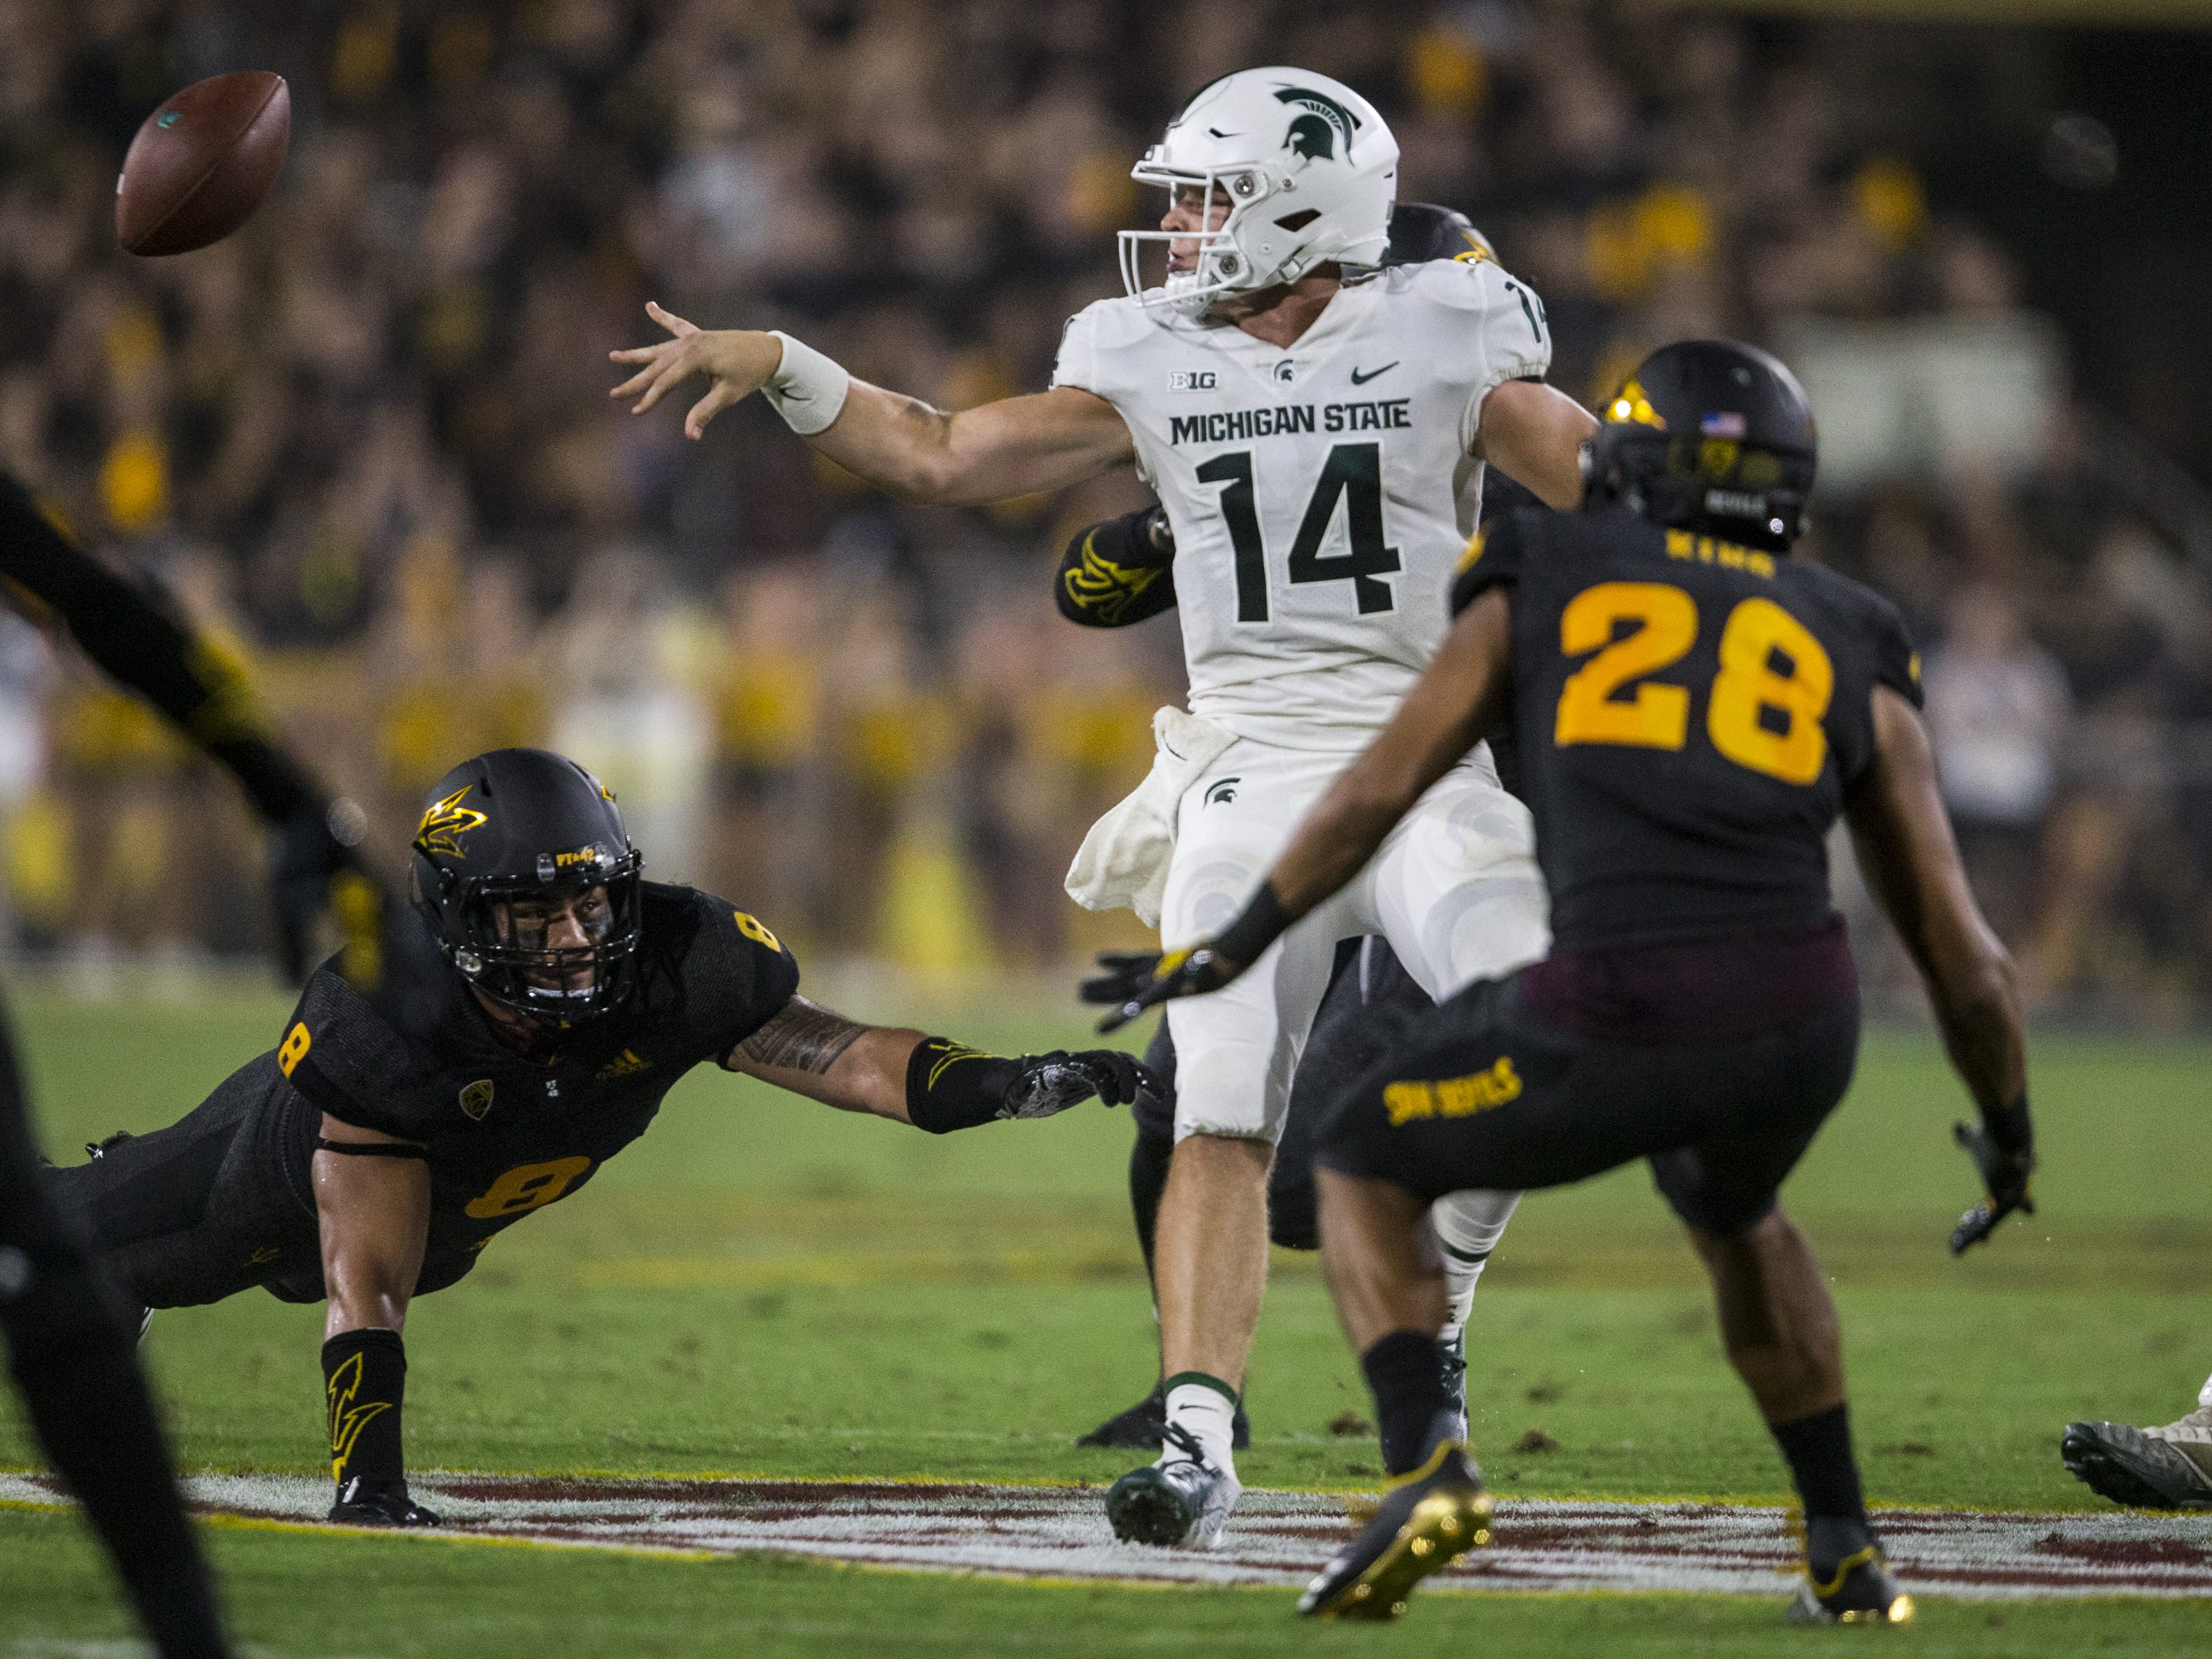 Michigan State's Brian Lewerke pitches the ball on an option play against Arizona State in the 3rd quarter on Saturday, Sept. 8, 2018, at Sun Devil Stadium in Tempe, Ariz.